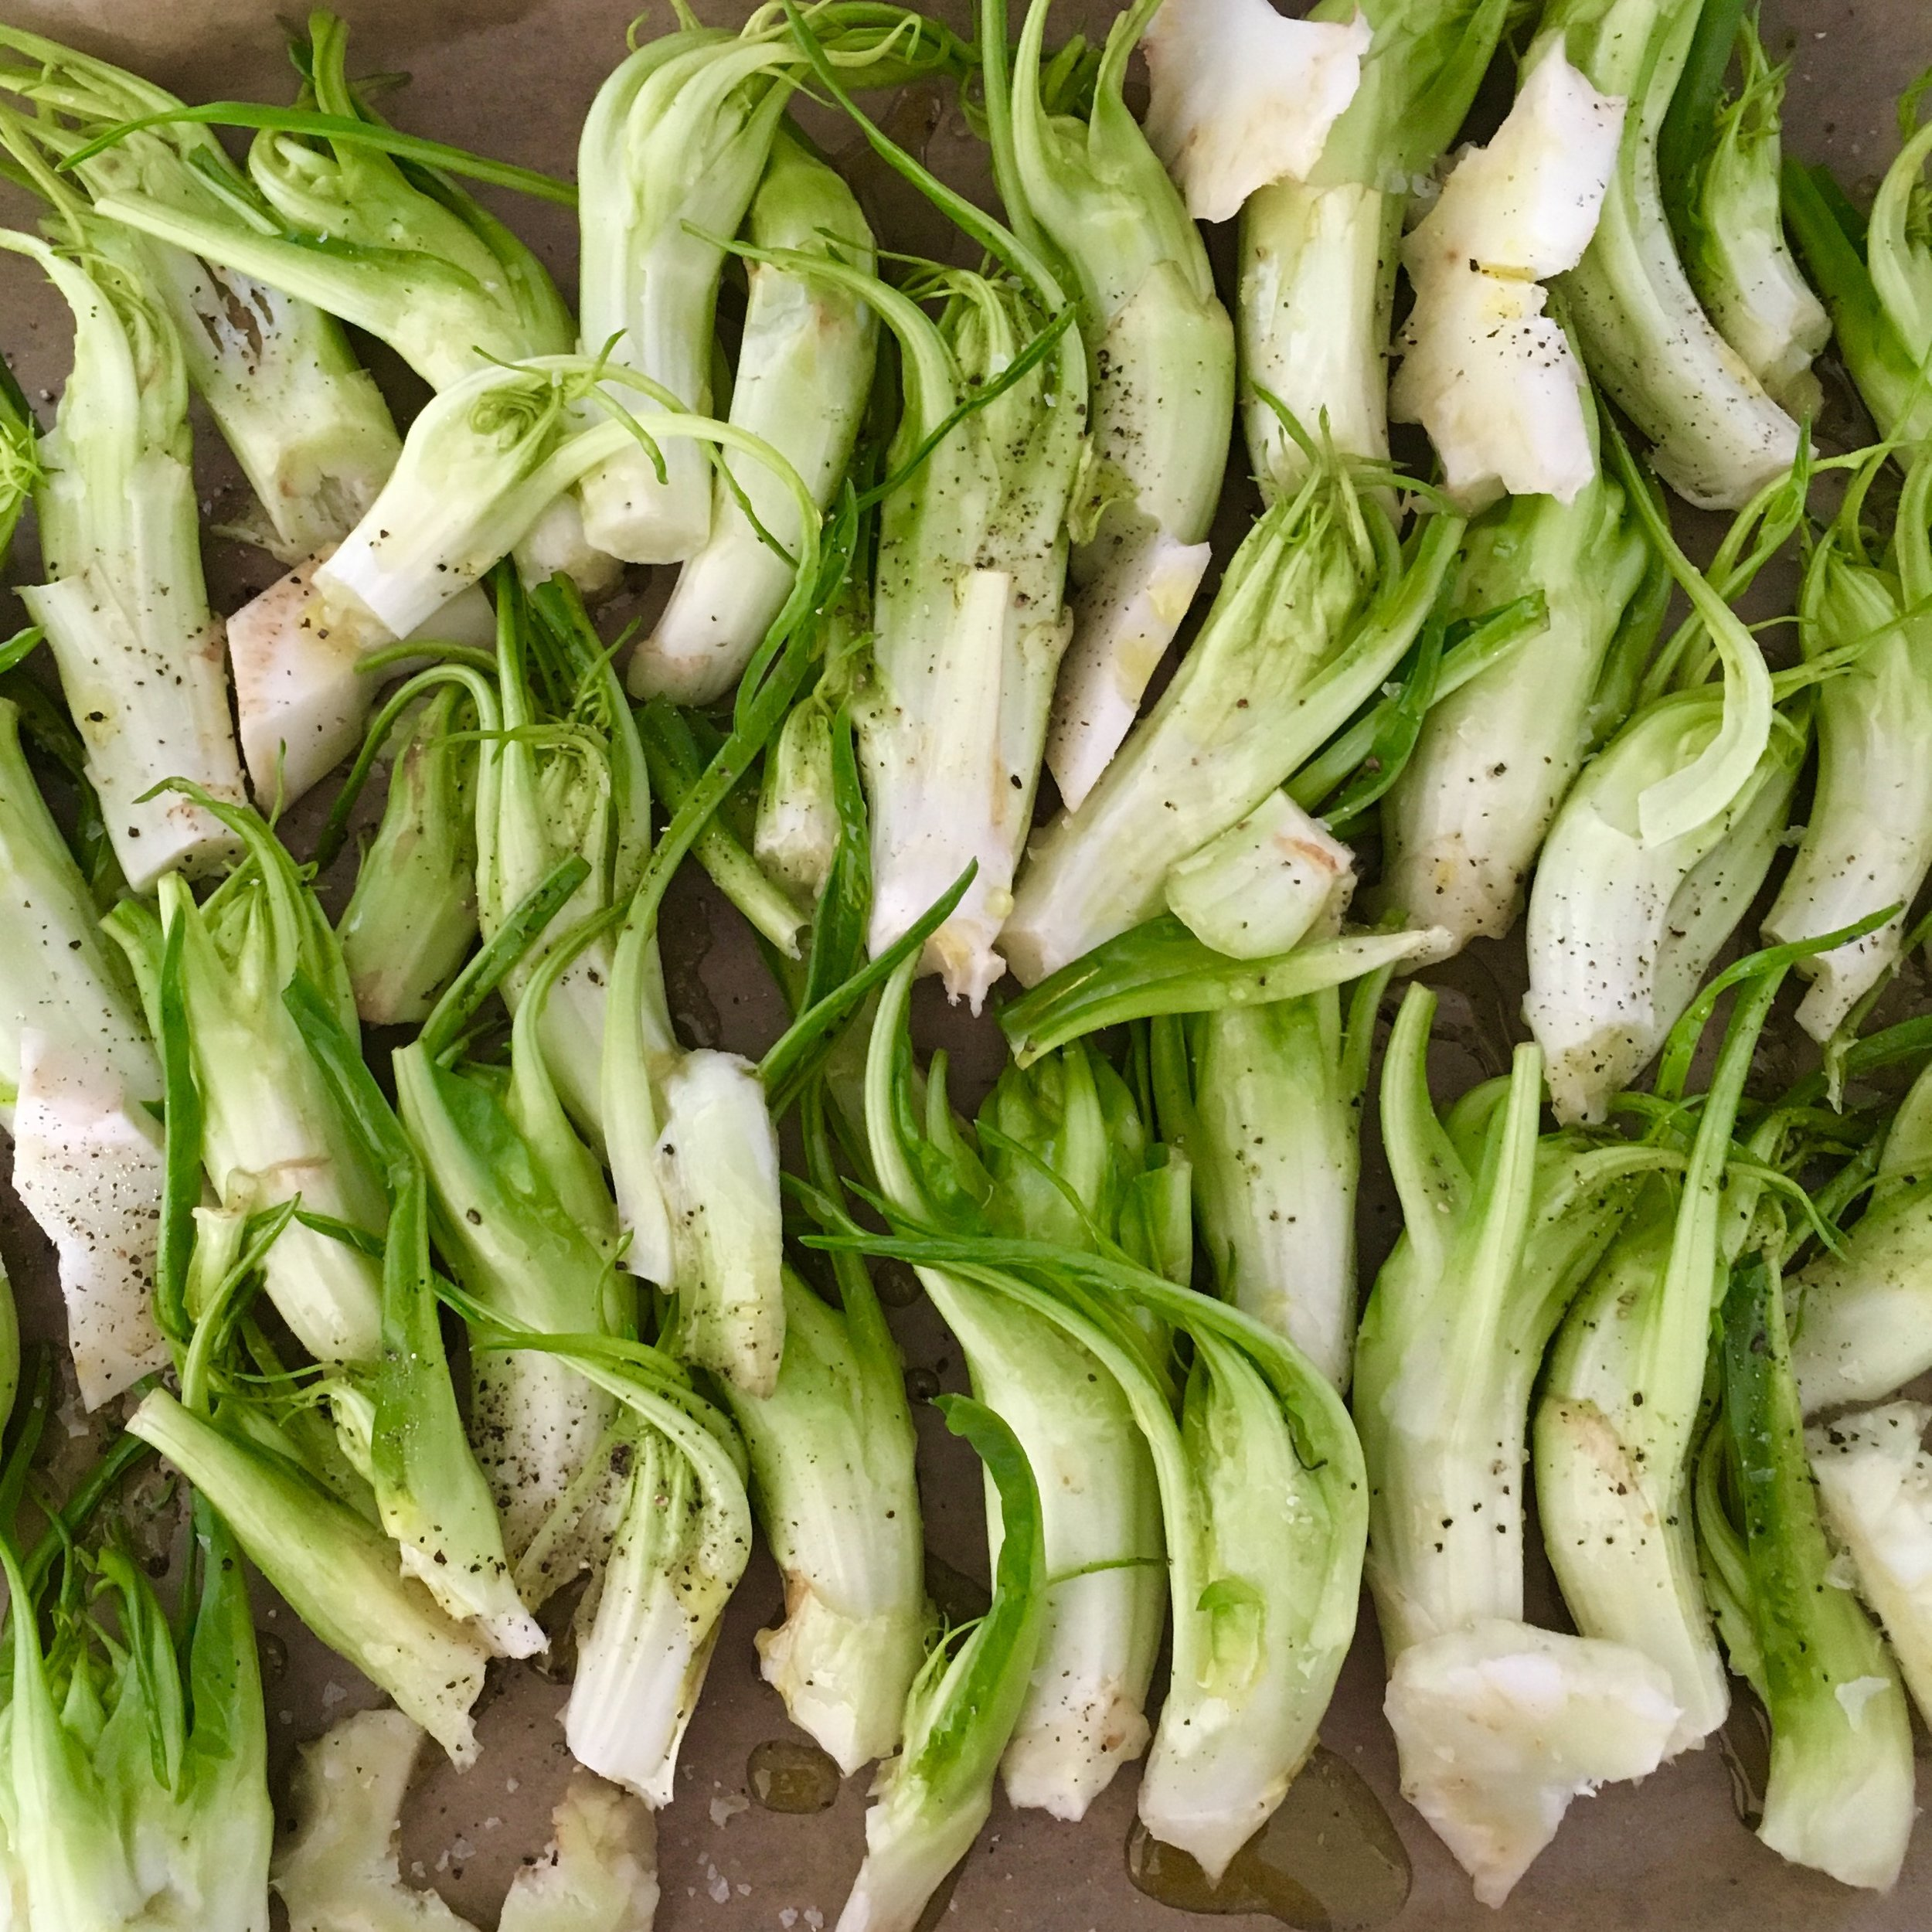 The individual shoots resemble asparagus a little bit, however they have a bitter flavour not unlike endives or dandelion. Here the shoots are dressed with olive oil and some salt and pepper before they are roasted in the oven for 20 minutes.